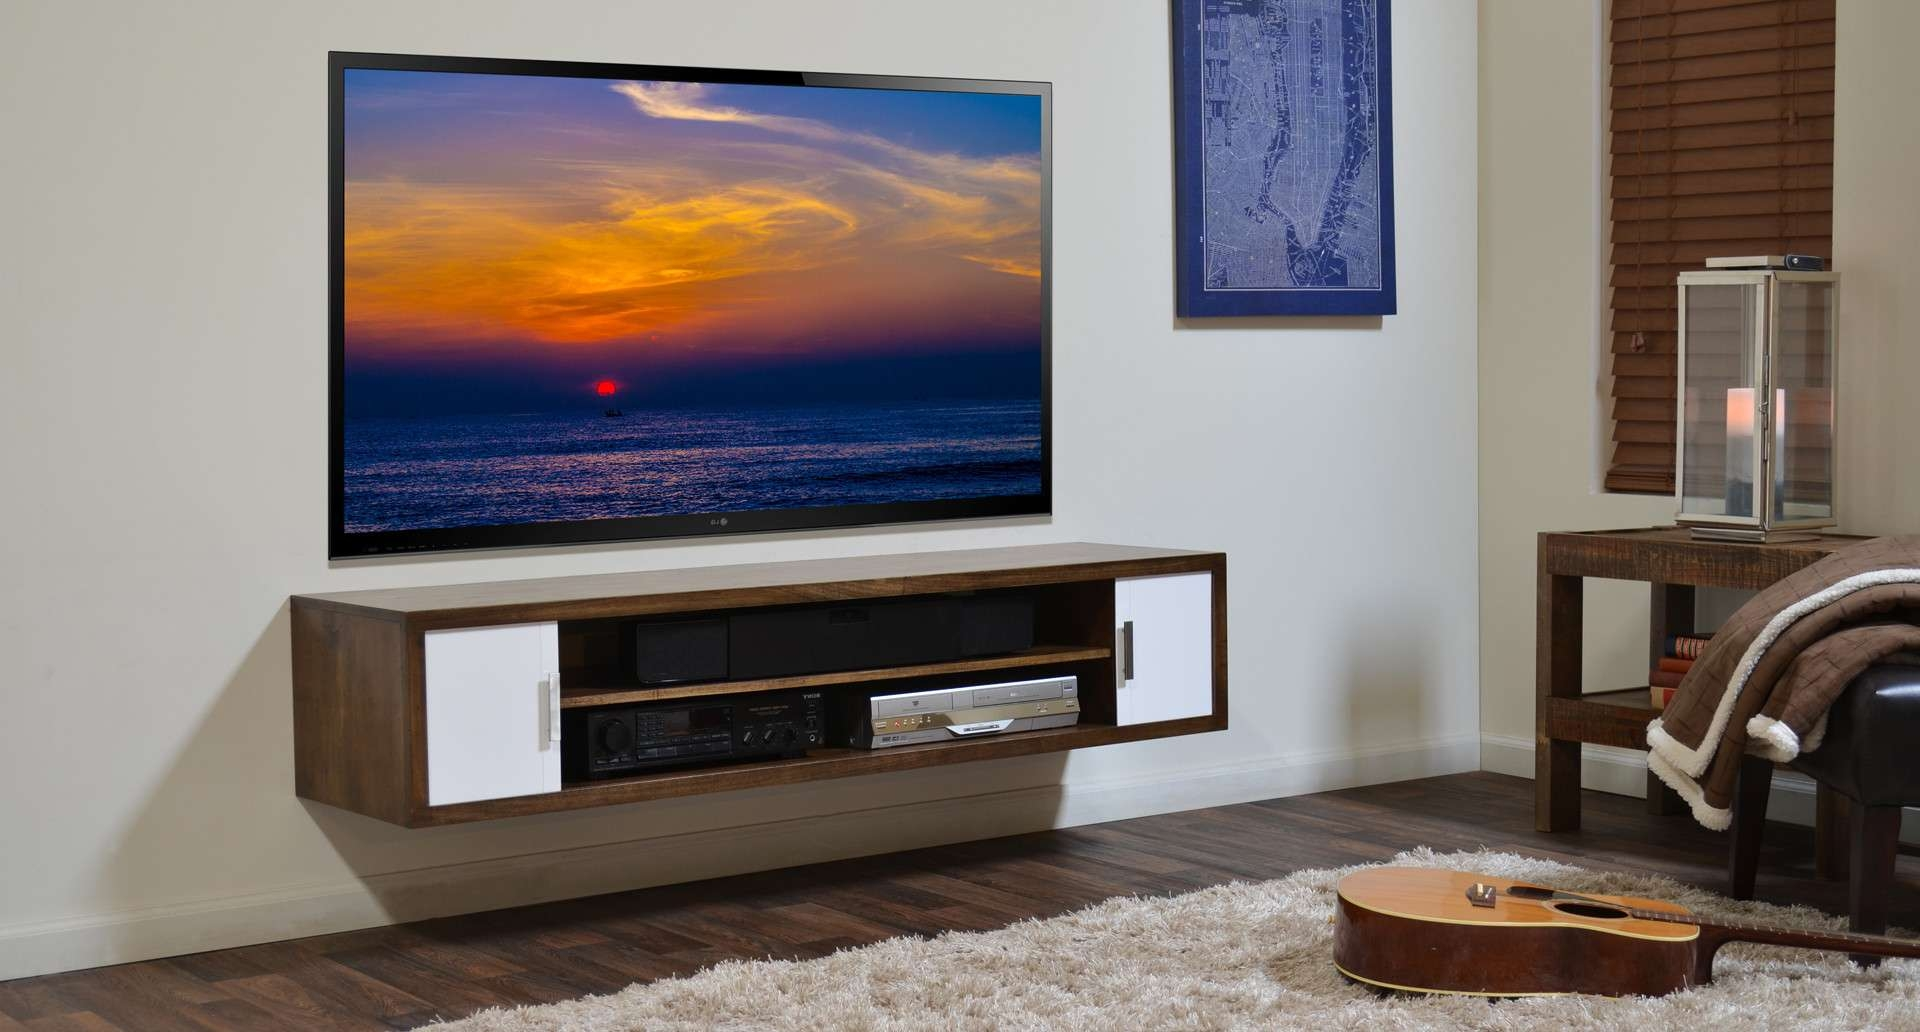 Wall Shelves Design: Floating Shelves Under Wall Mounted Tv For Wall Mounted Under Tv Cabinets (View 4 of 20)